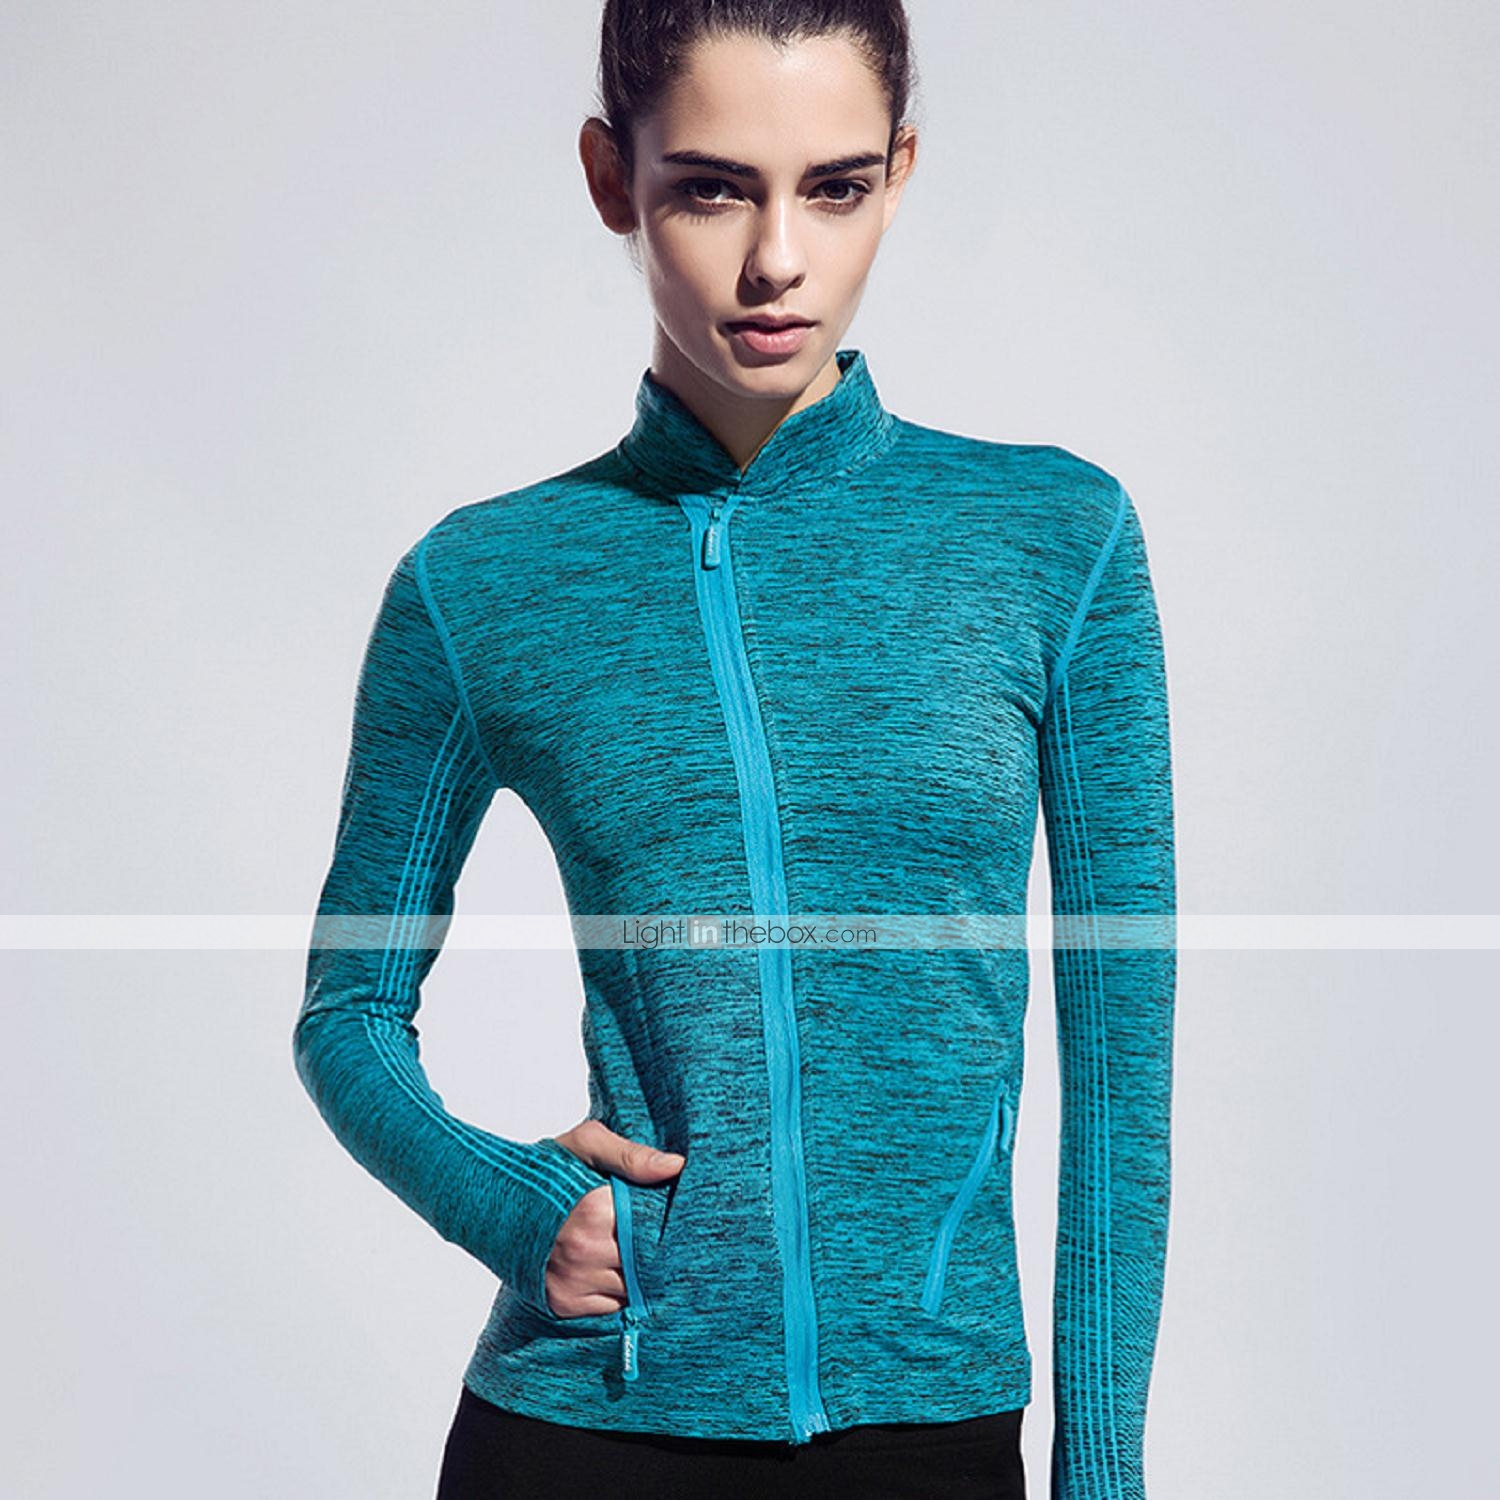 Running t shirt jacket tops women 39 s long sleeve for Lightweight breathable long sleeve shirts